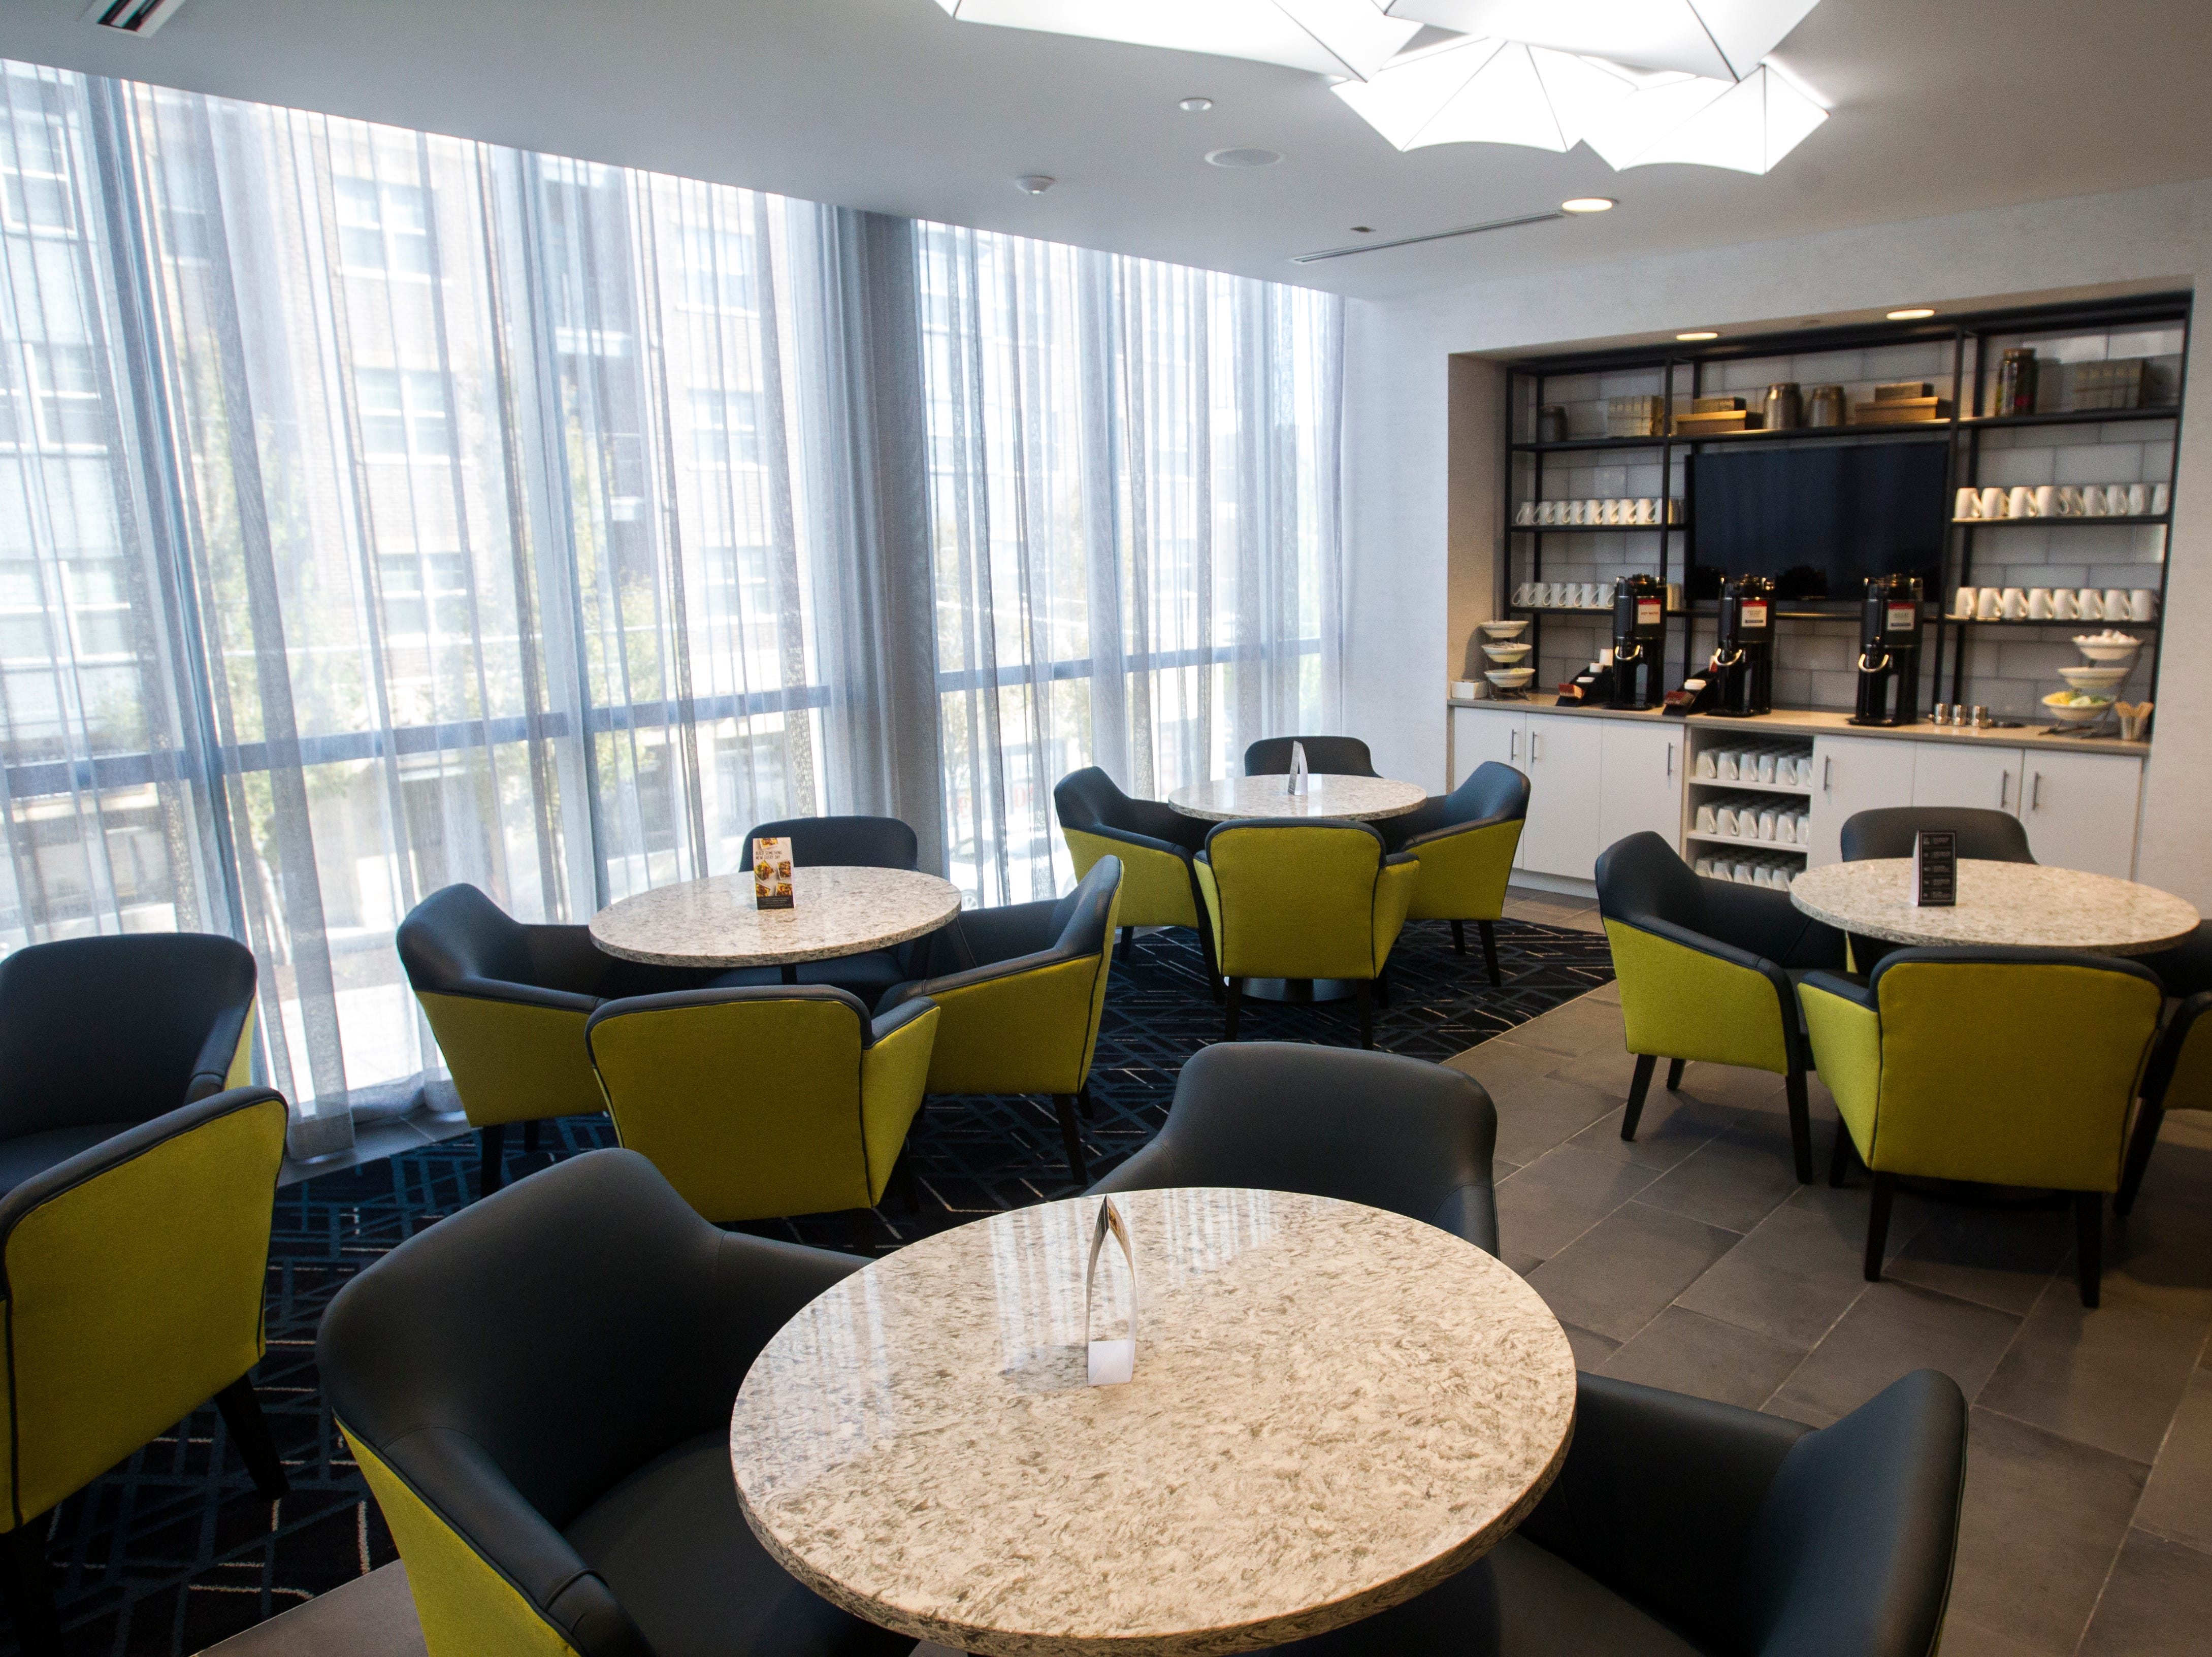 The second floor breakfast area is seen during a tour on Tuesday, Sept. 4, 2018, at Hyatt Place on the corner of Court and Linn Streets in downtown Iowa City.